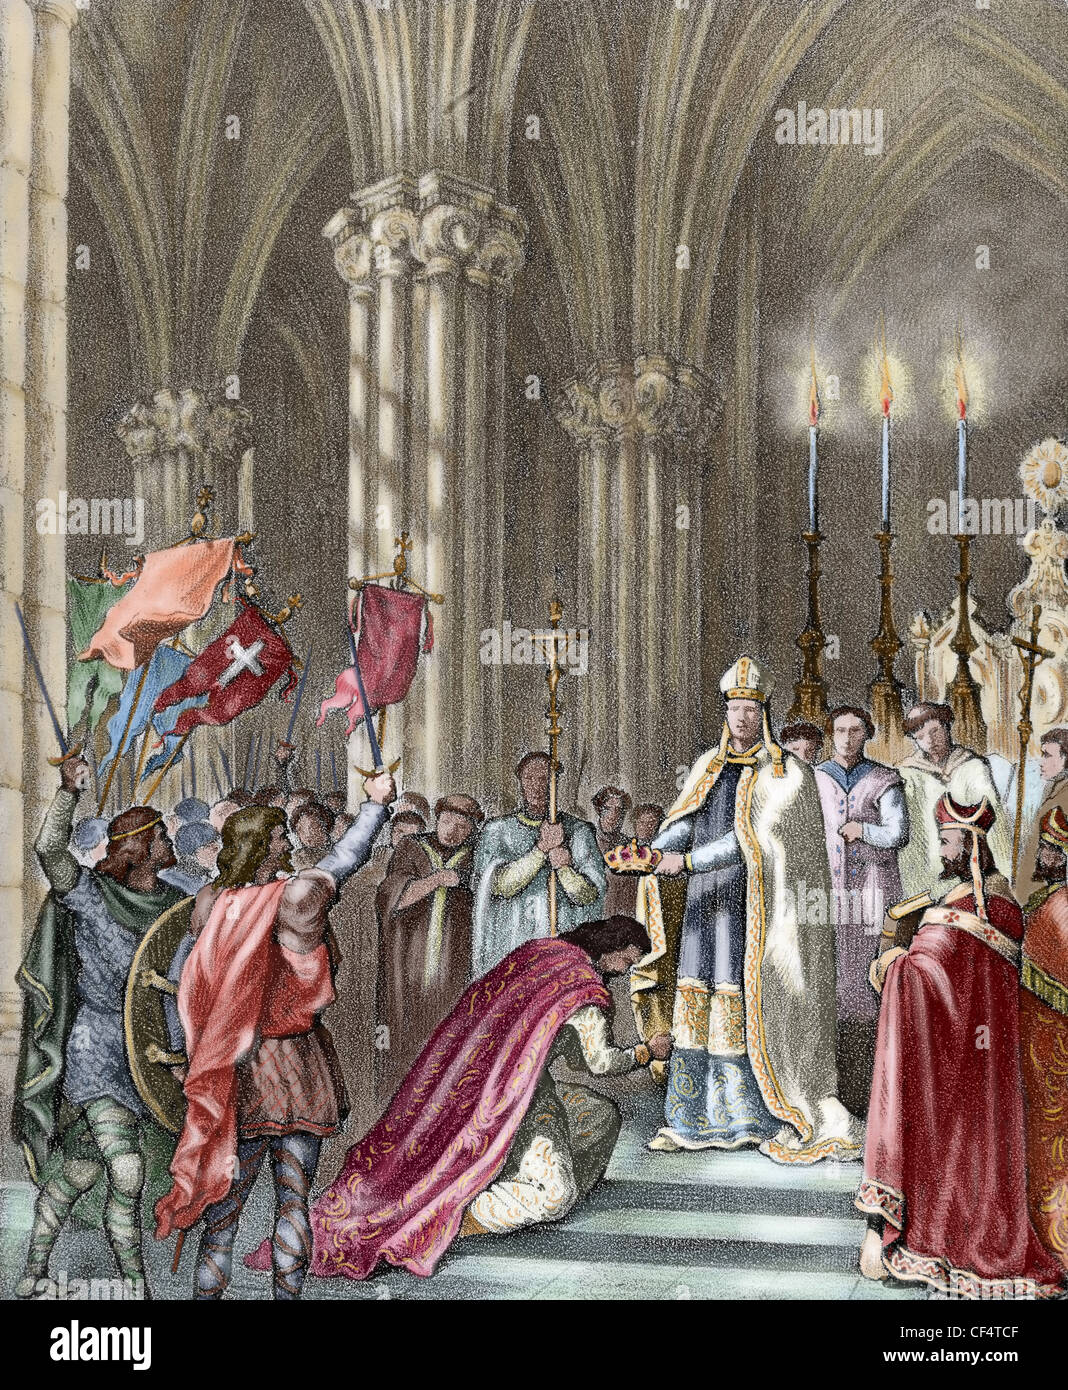 Alfonso VII (1105-1157), called the Emperor. Ceremony with his proclamation as Emperor of Spain in the Cathedral - Stock Image